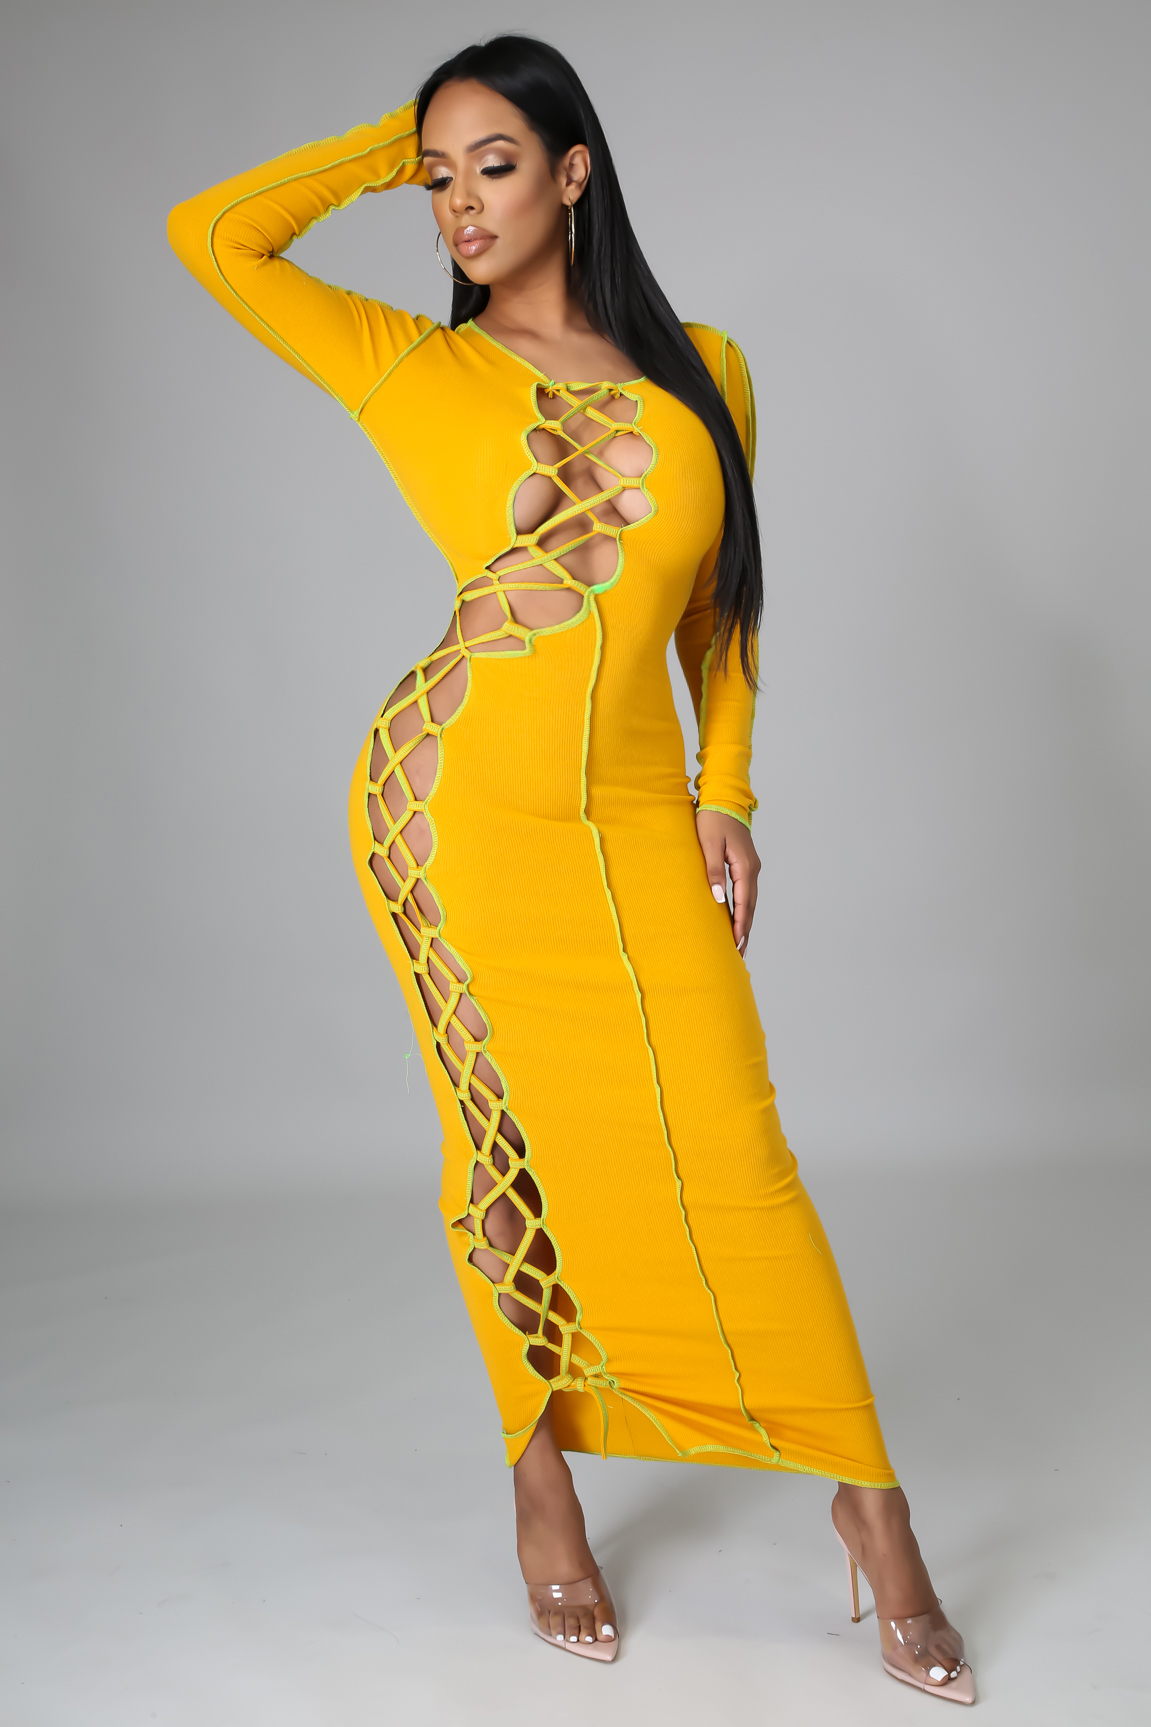 Martinique Mamacita Dress